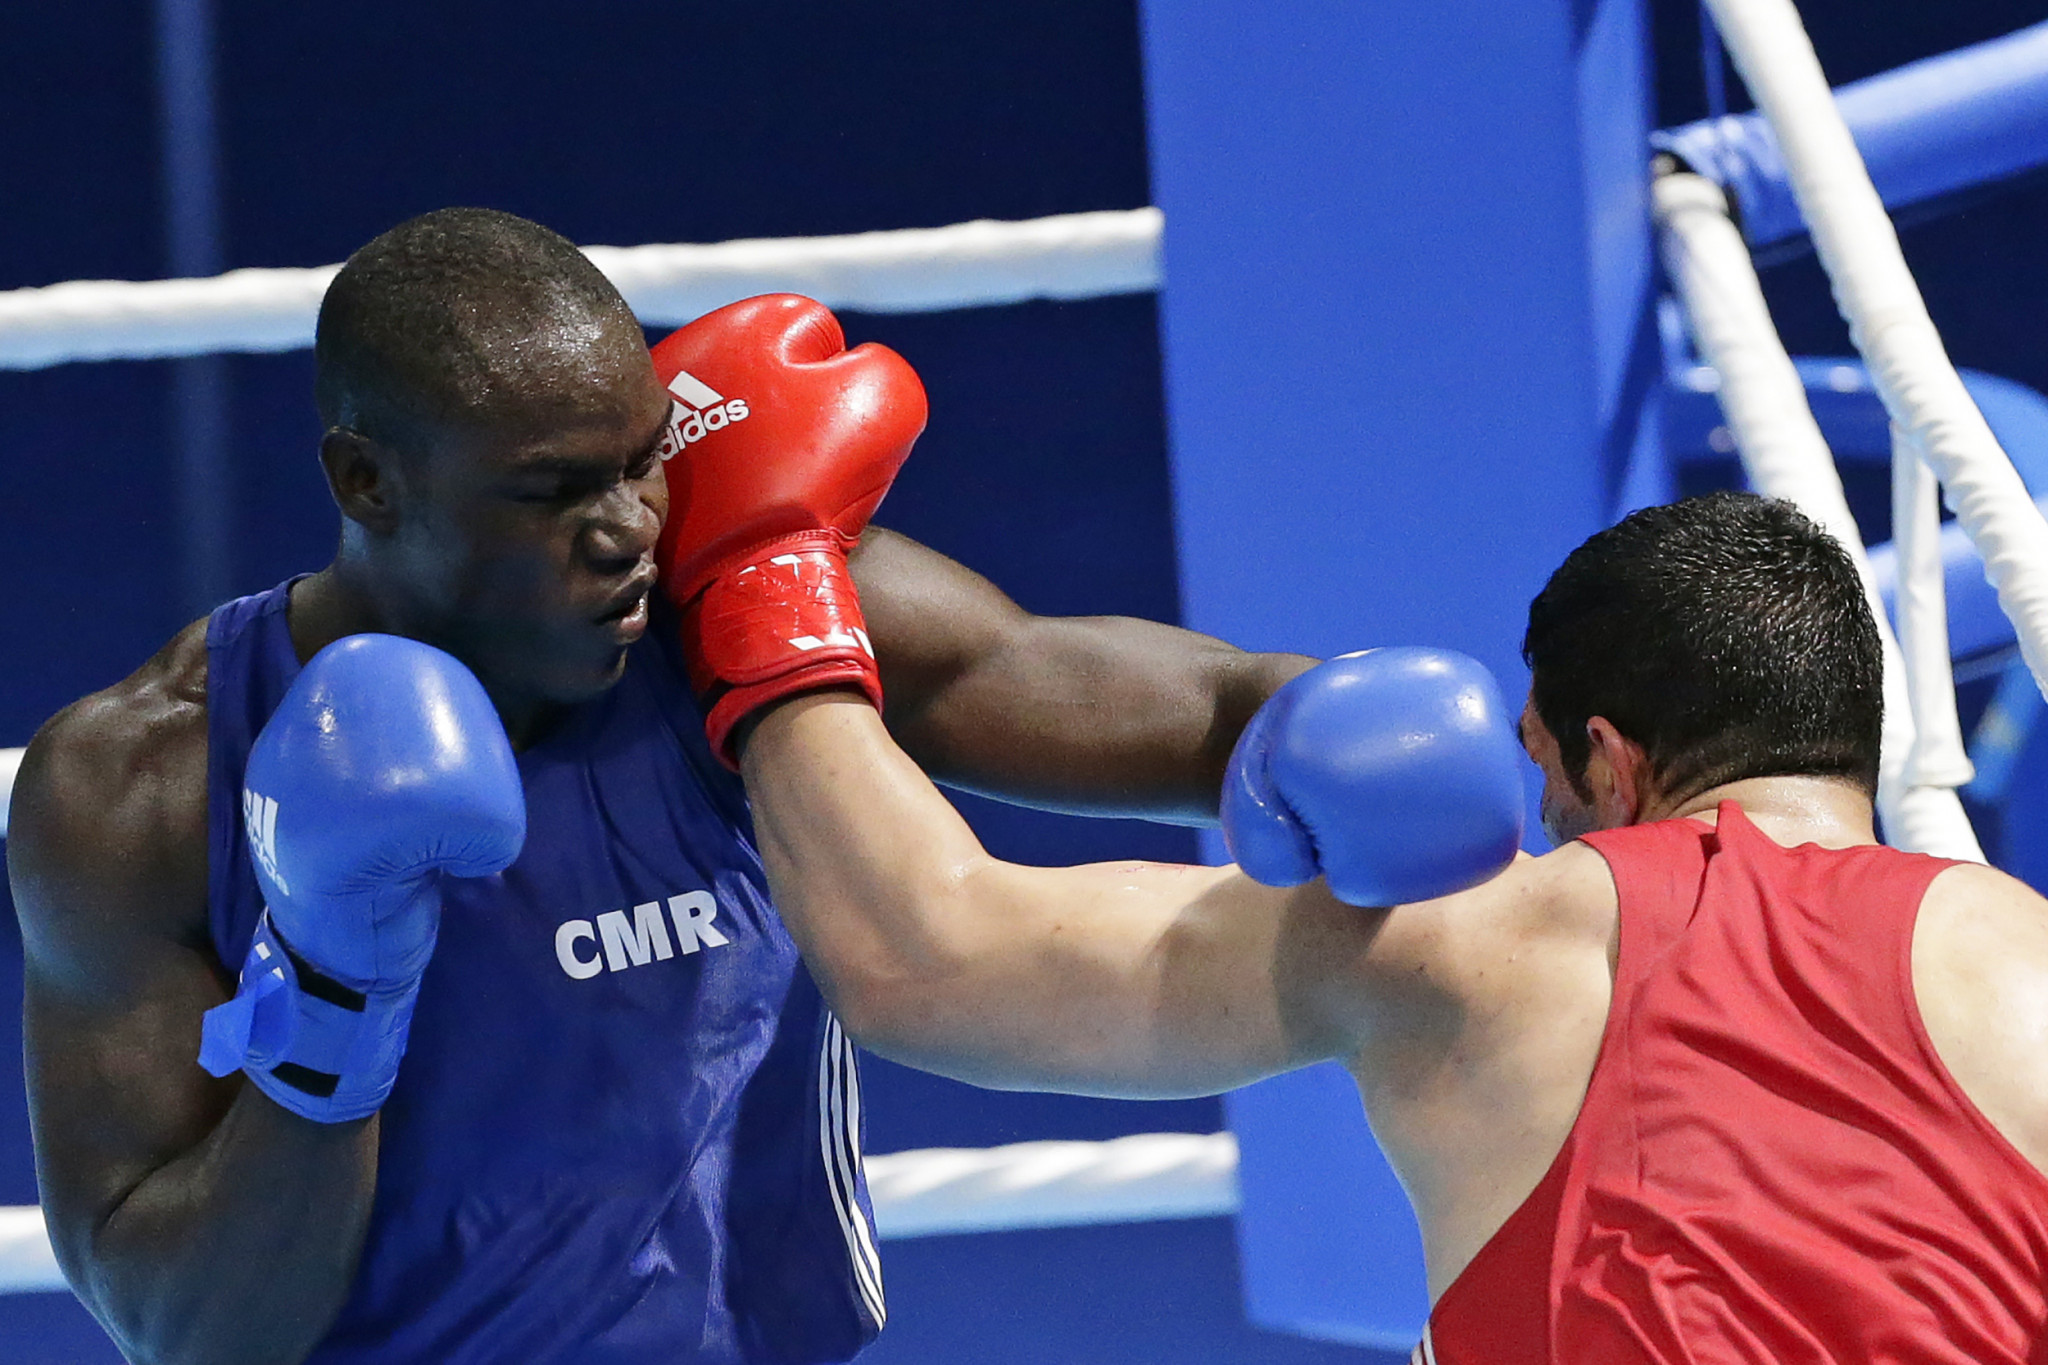 Cameroon's Arsene Fosso was a World Championship bronze medallist in 2017 but was knocked out in the quarter-finals of last year's Commonwealth Games in the Gold Coast ©Getty Images